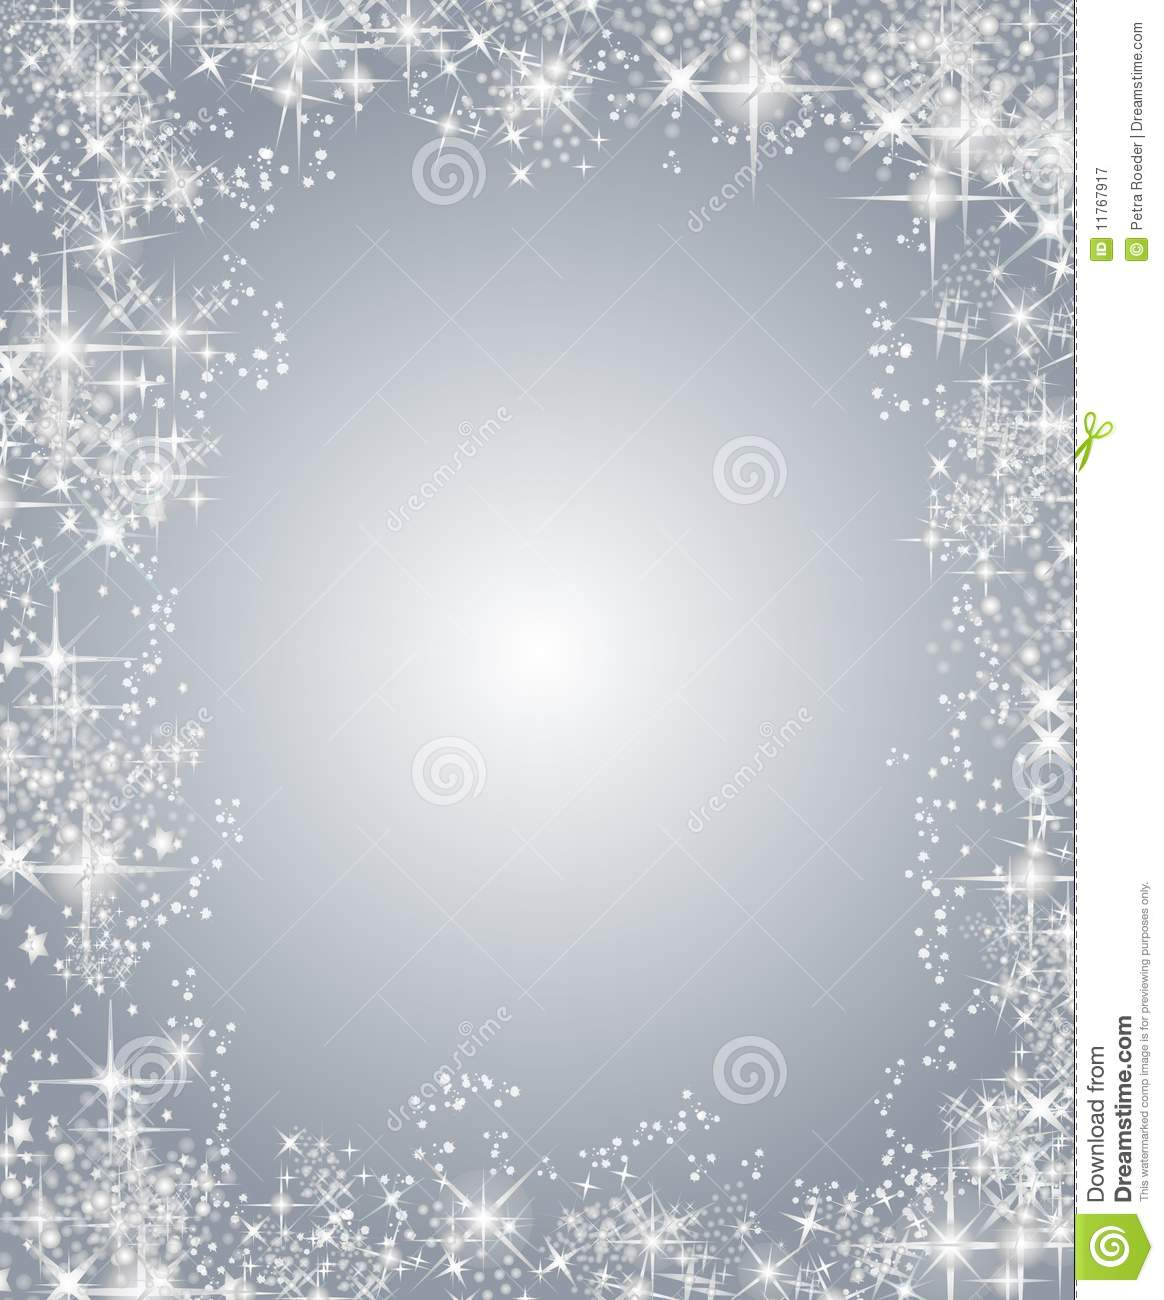 Silver christmas frame with stars stock illustration